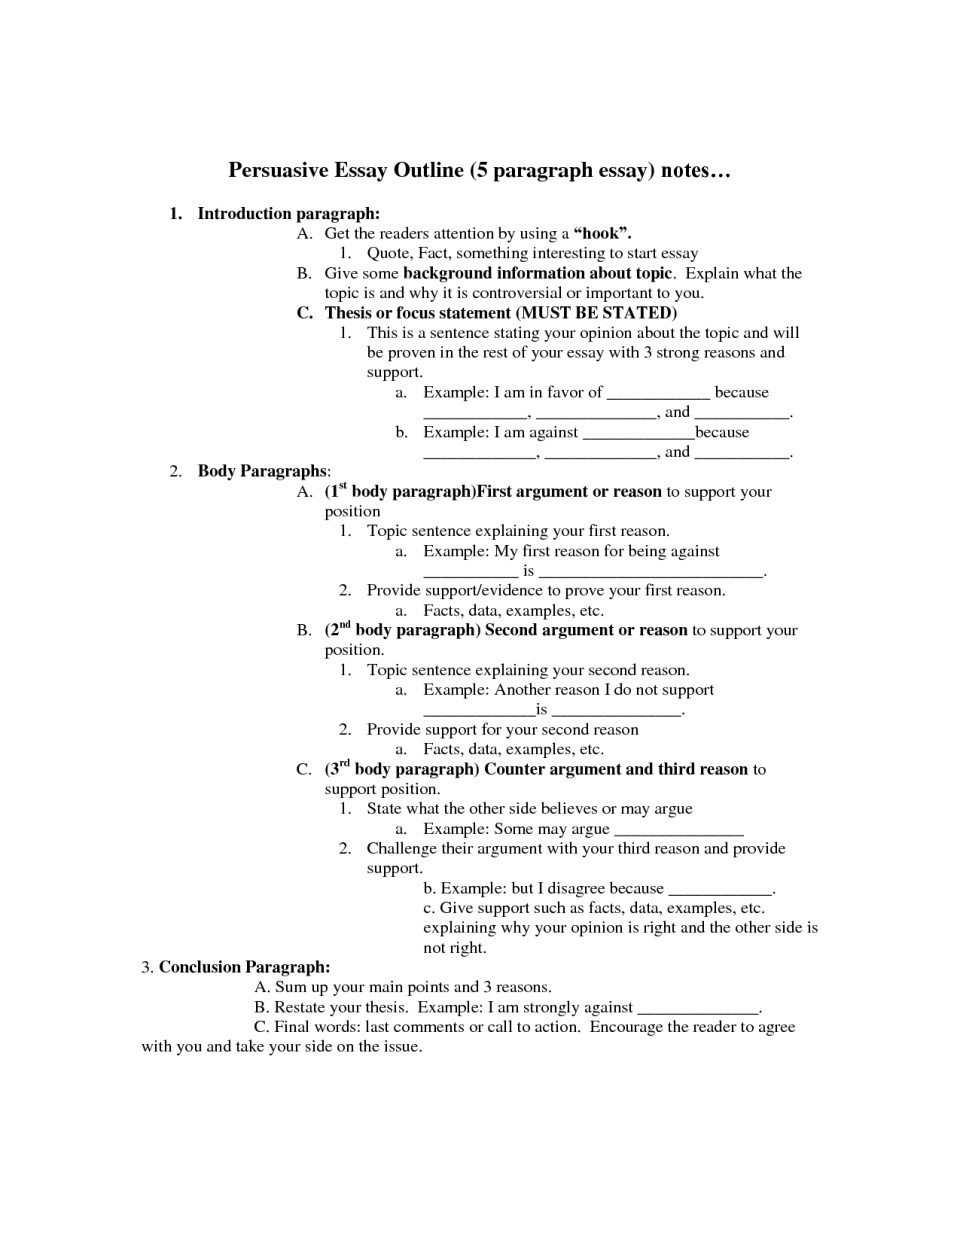 006 Persuasive Essay Outline Unbelievable Doc Template Middle School Pdf 960